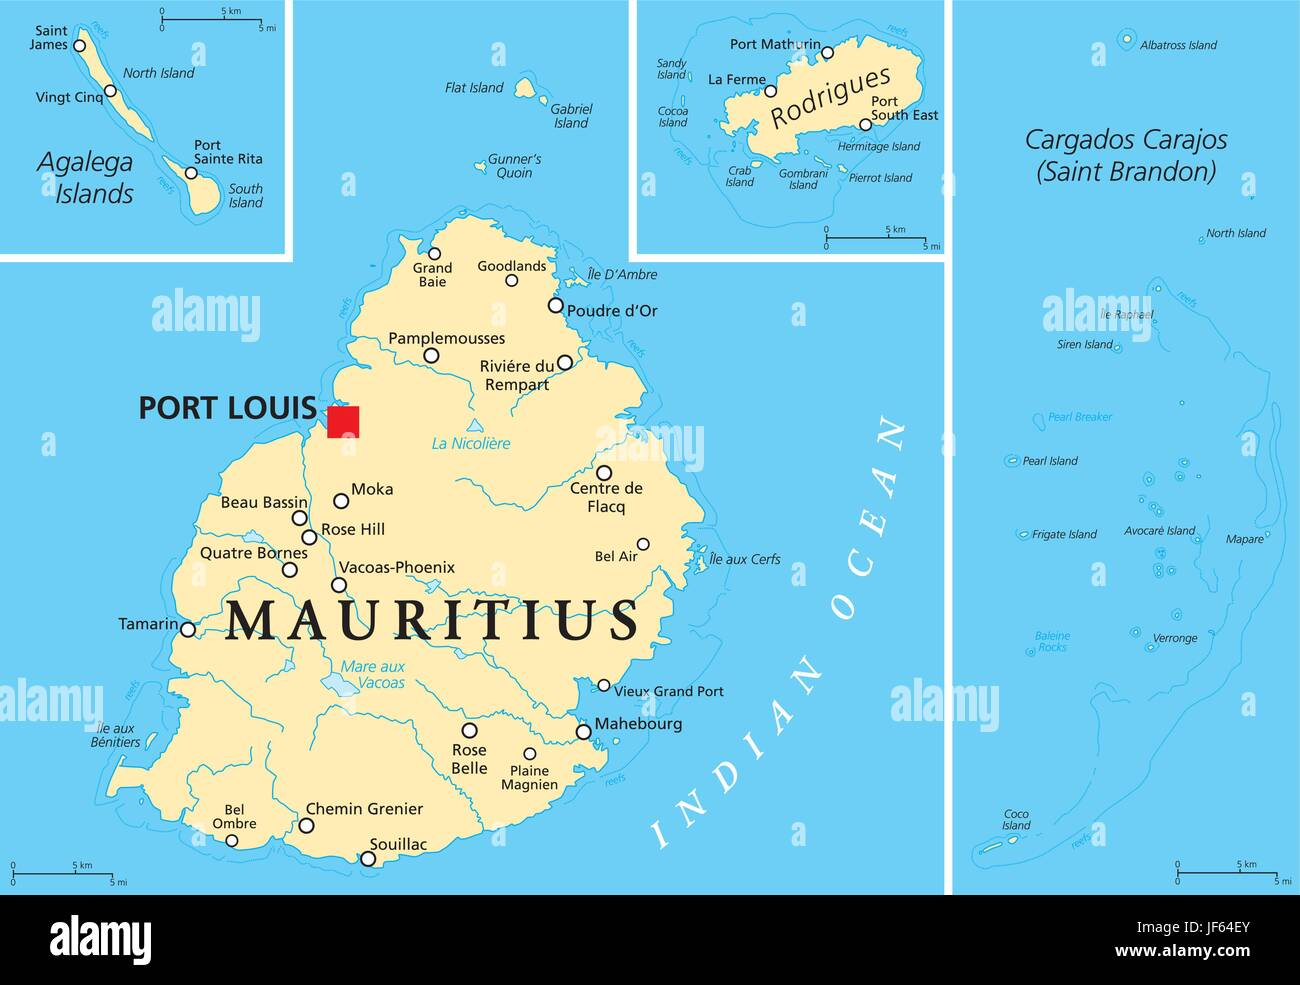 mauritius, map, atlas, map of the world, travel, africa